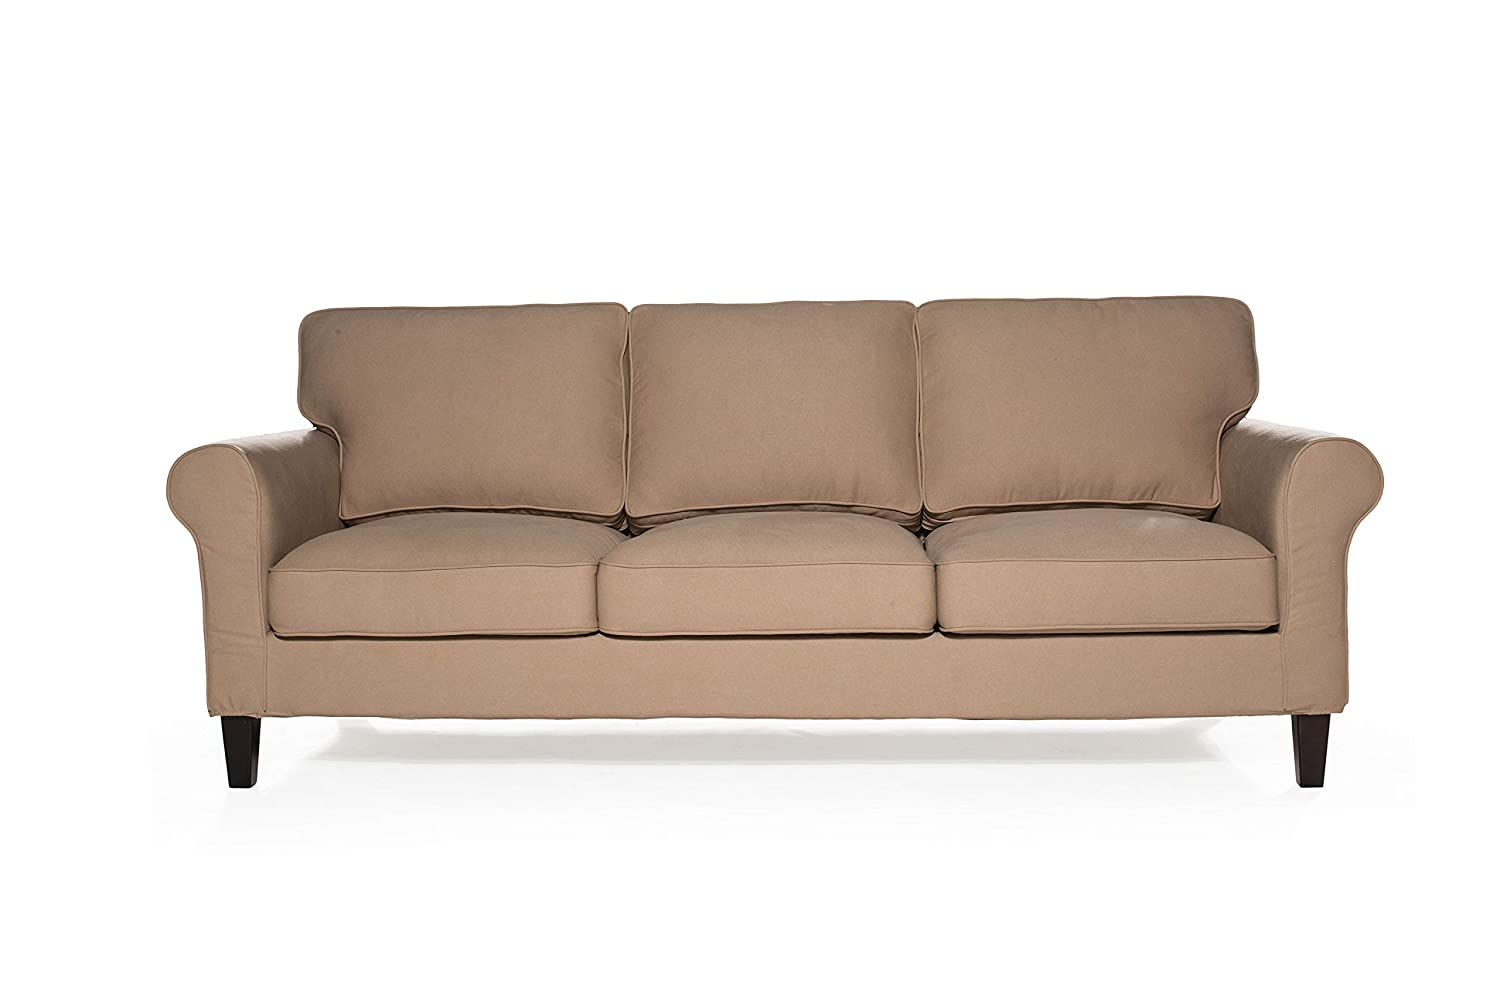 Amazon.com: Sofas 2 Go S2G Walton Khaki Sofa, One Size ...